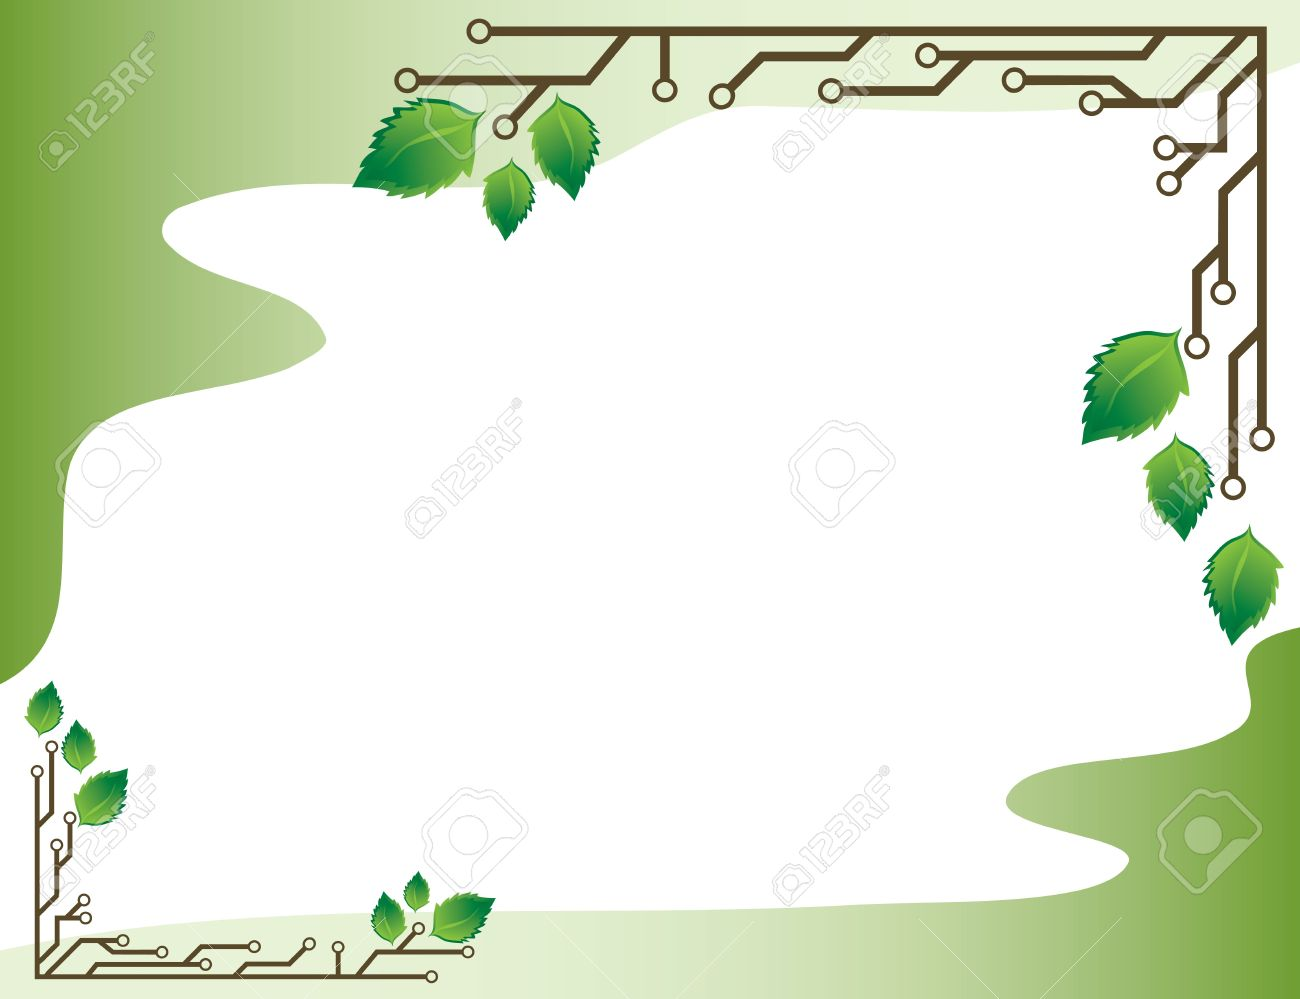 a light green background frame with birch leaves and electronic circuits stock vector 7132711 - Electronic Frame